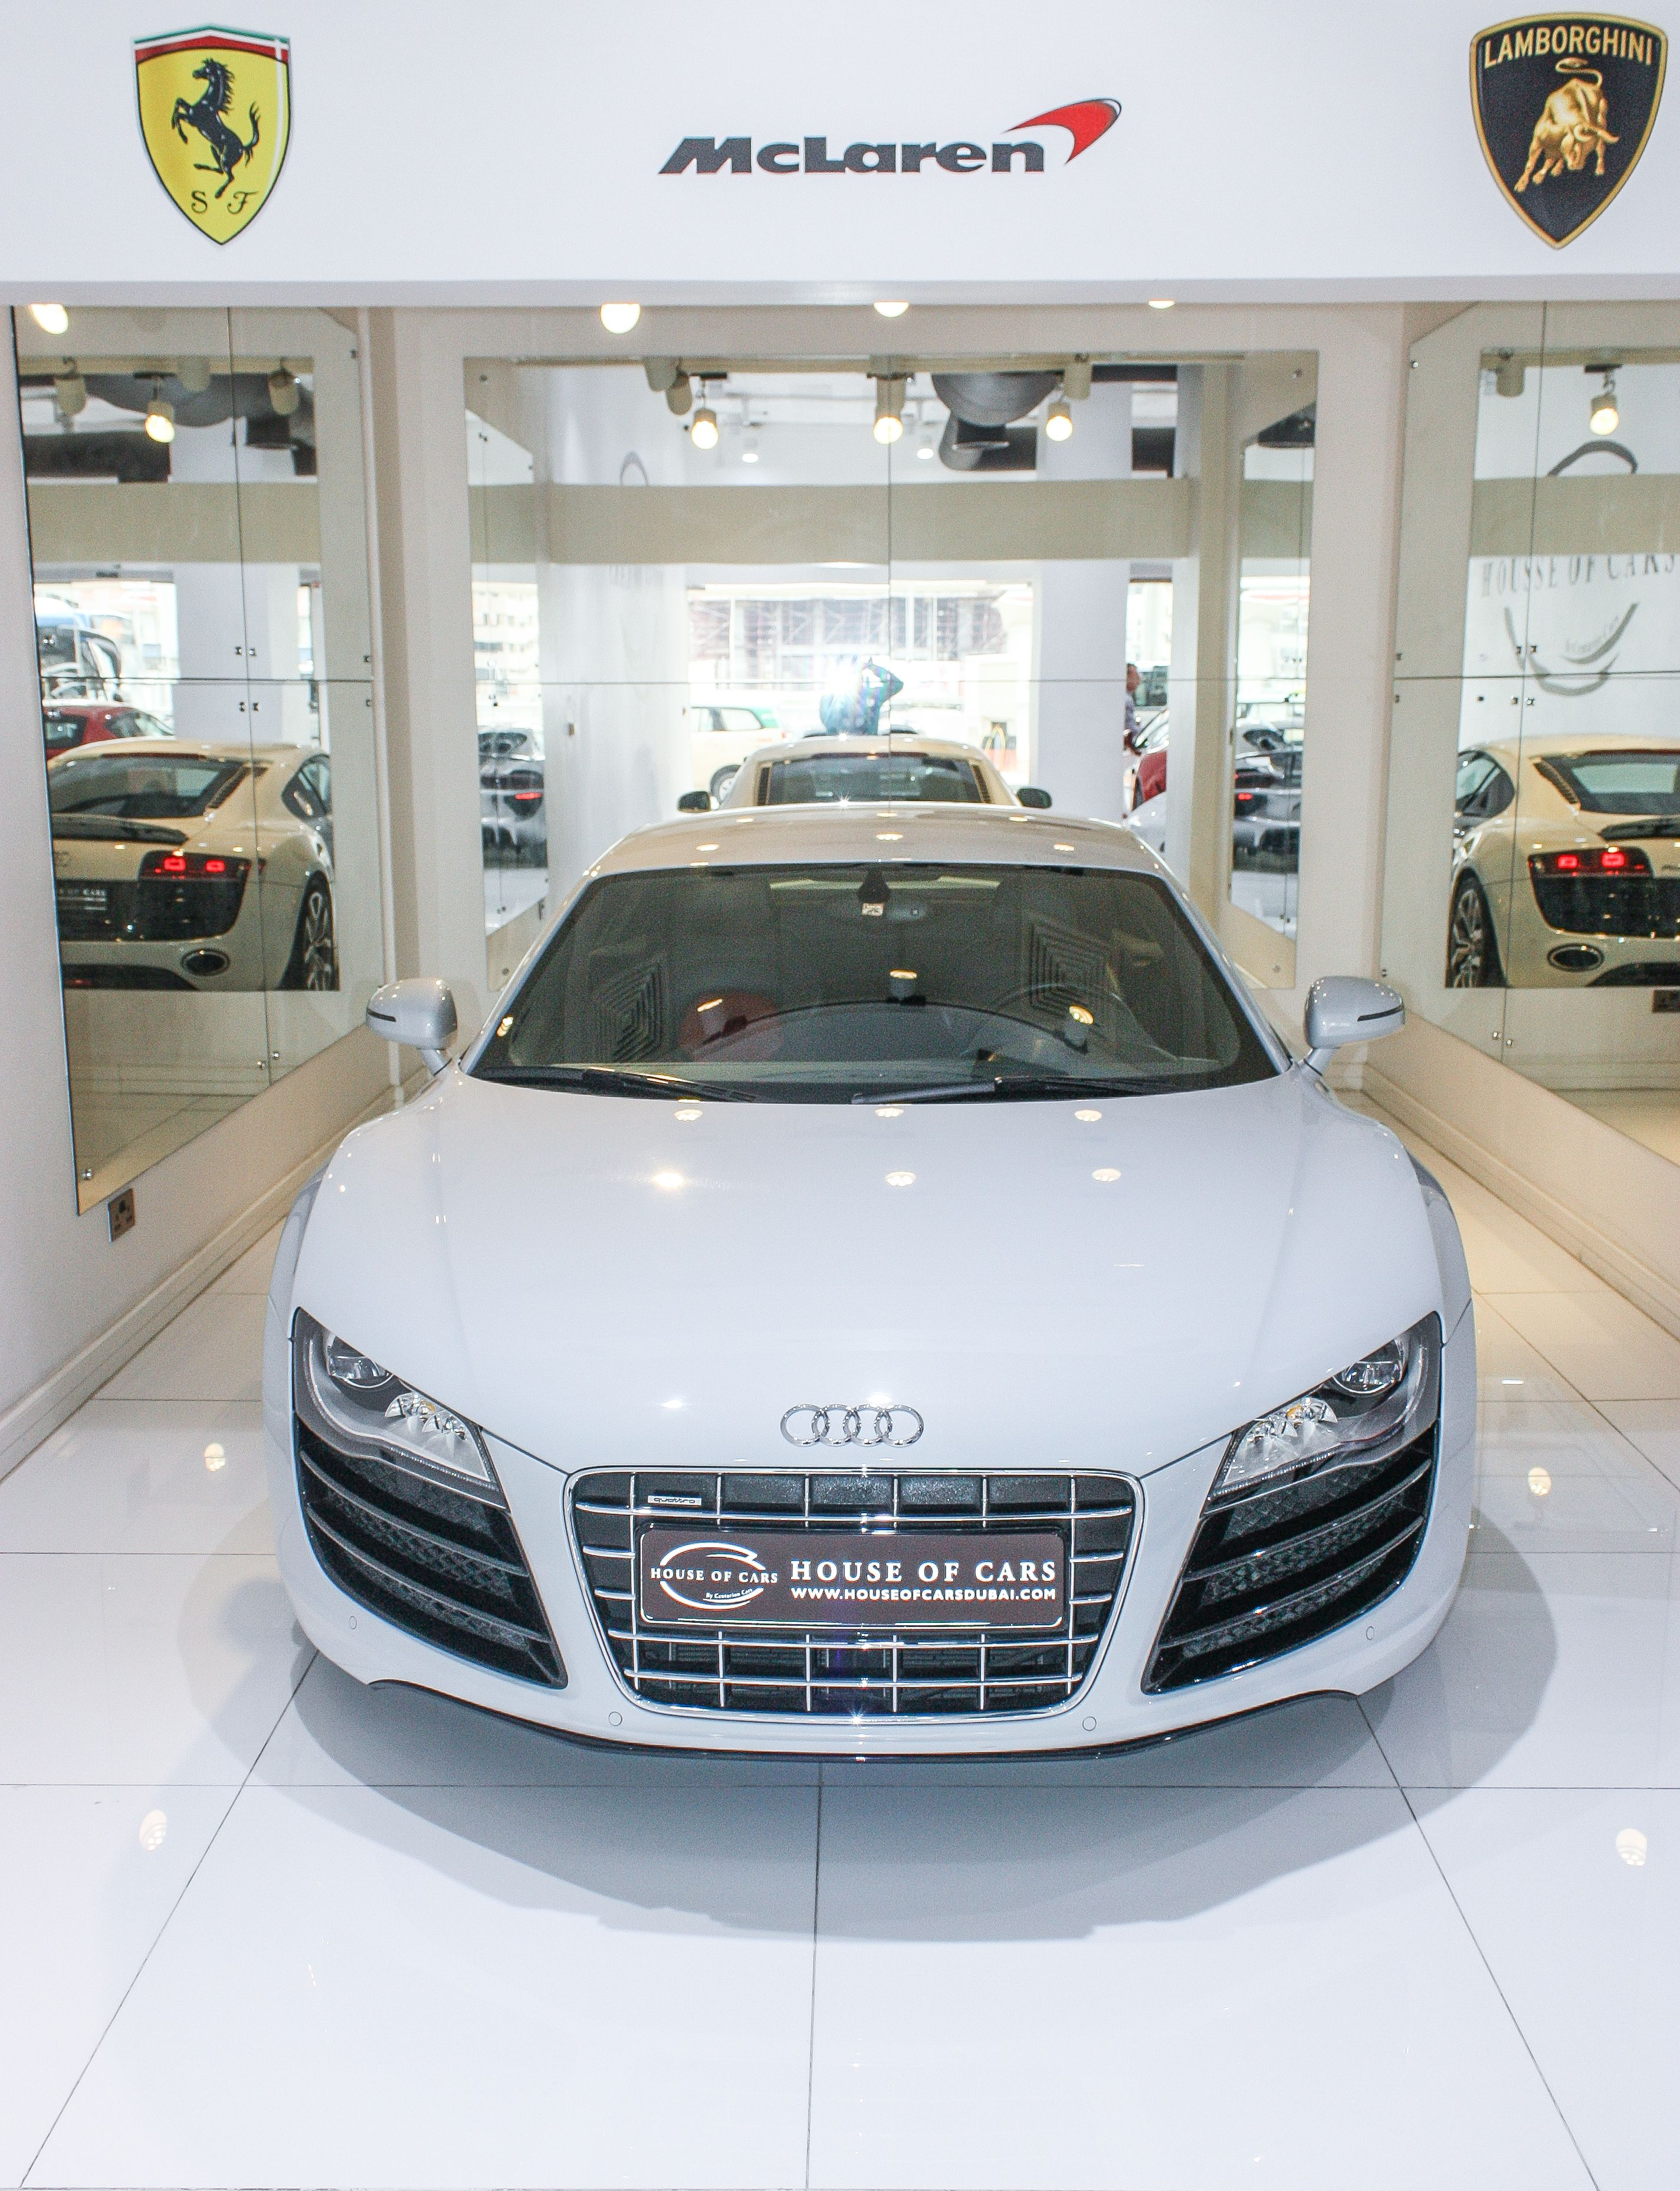 Audi R8 V10 2013 25 000 kms Gulf Specs price 240 000 aed